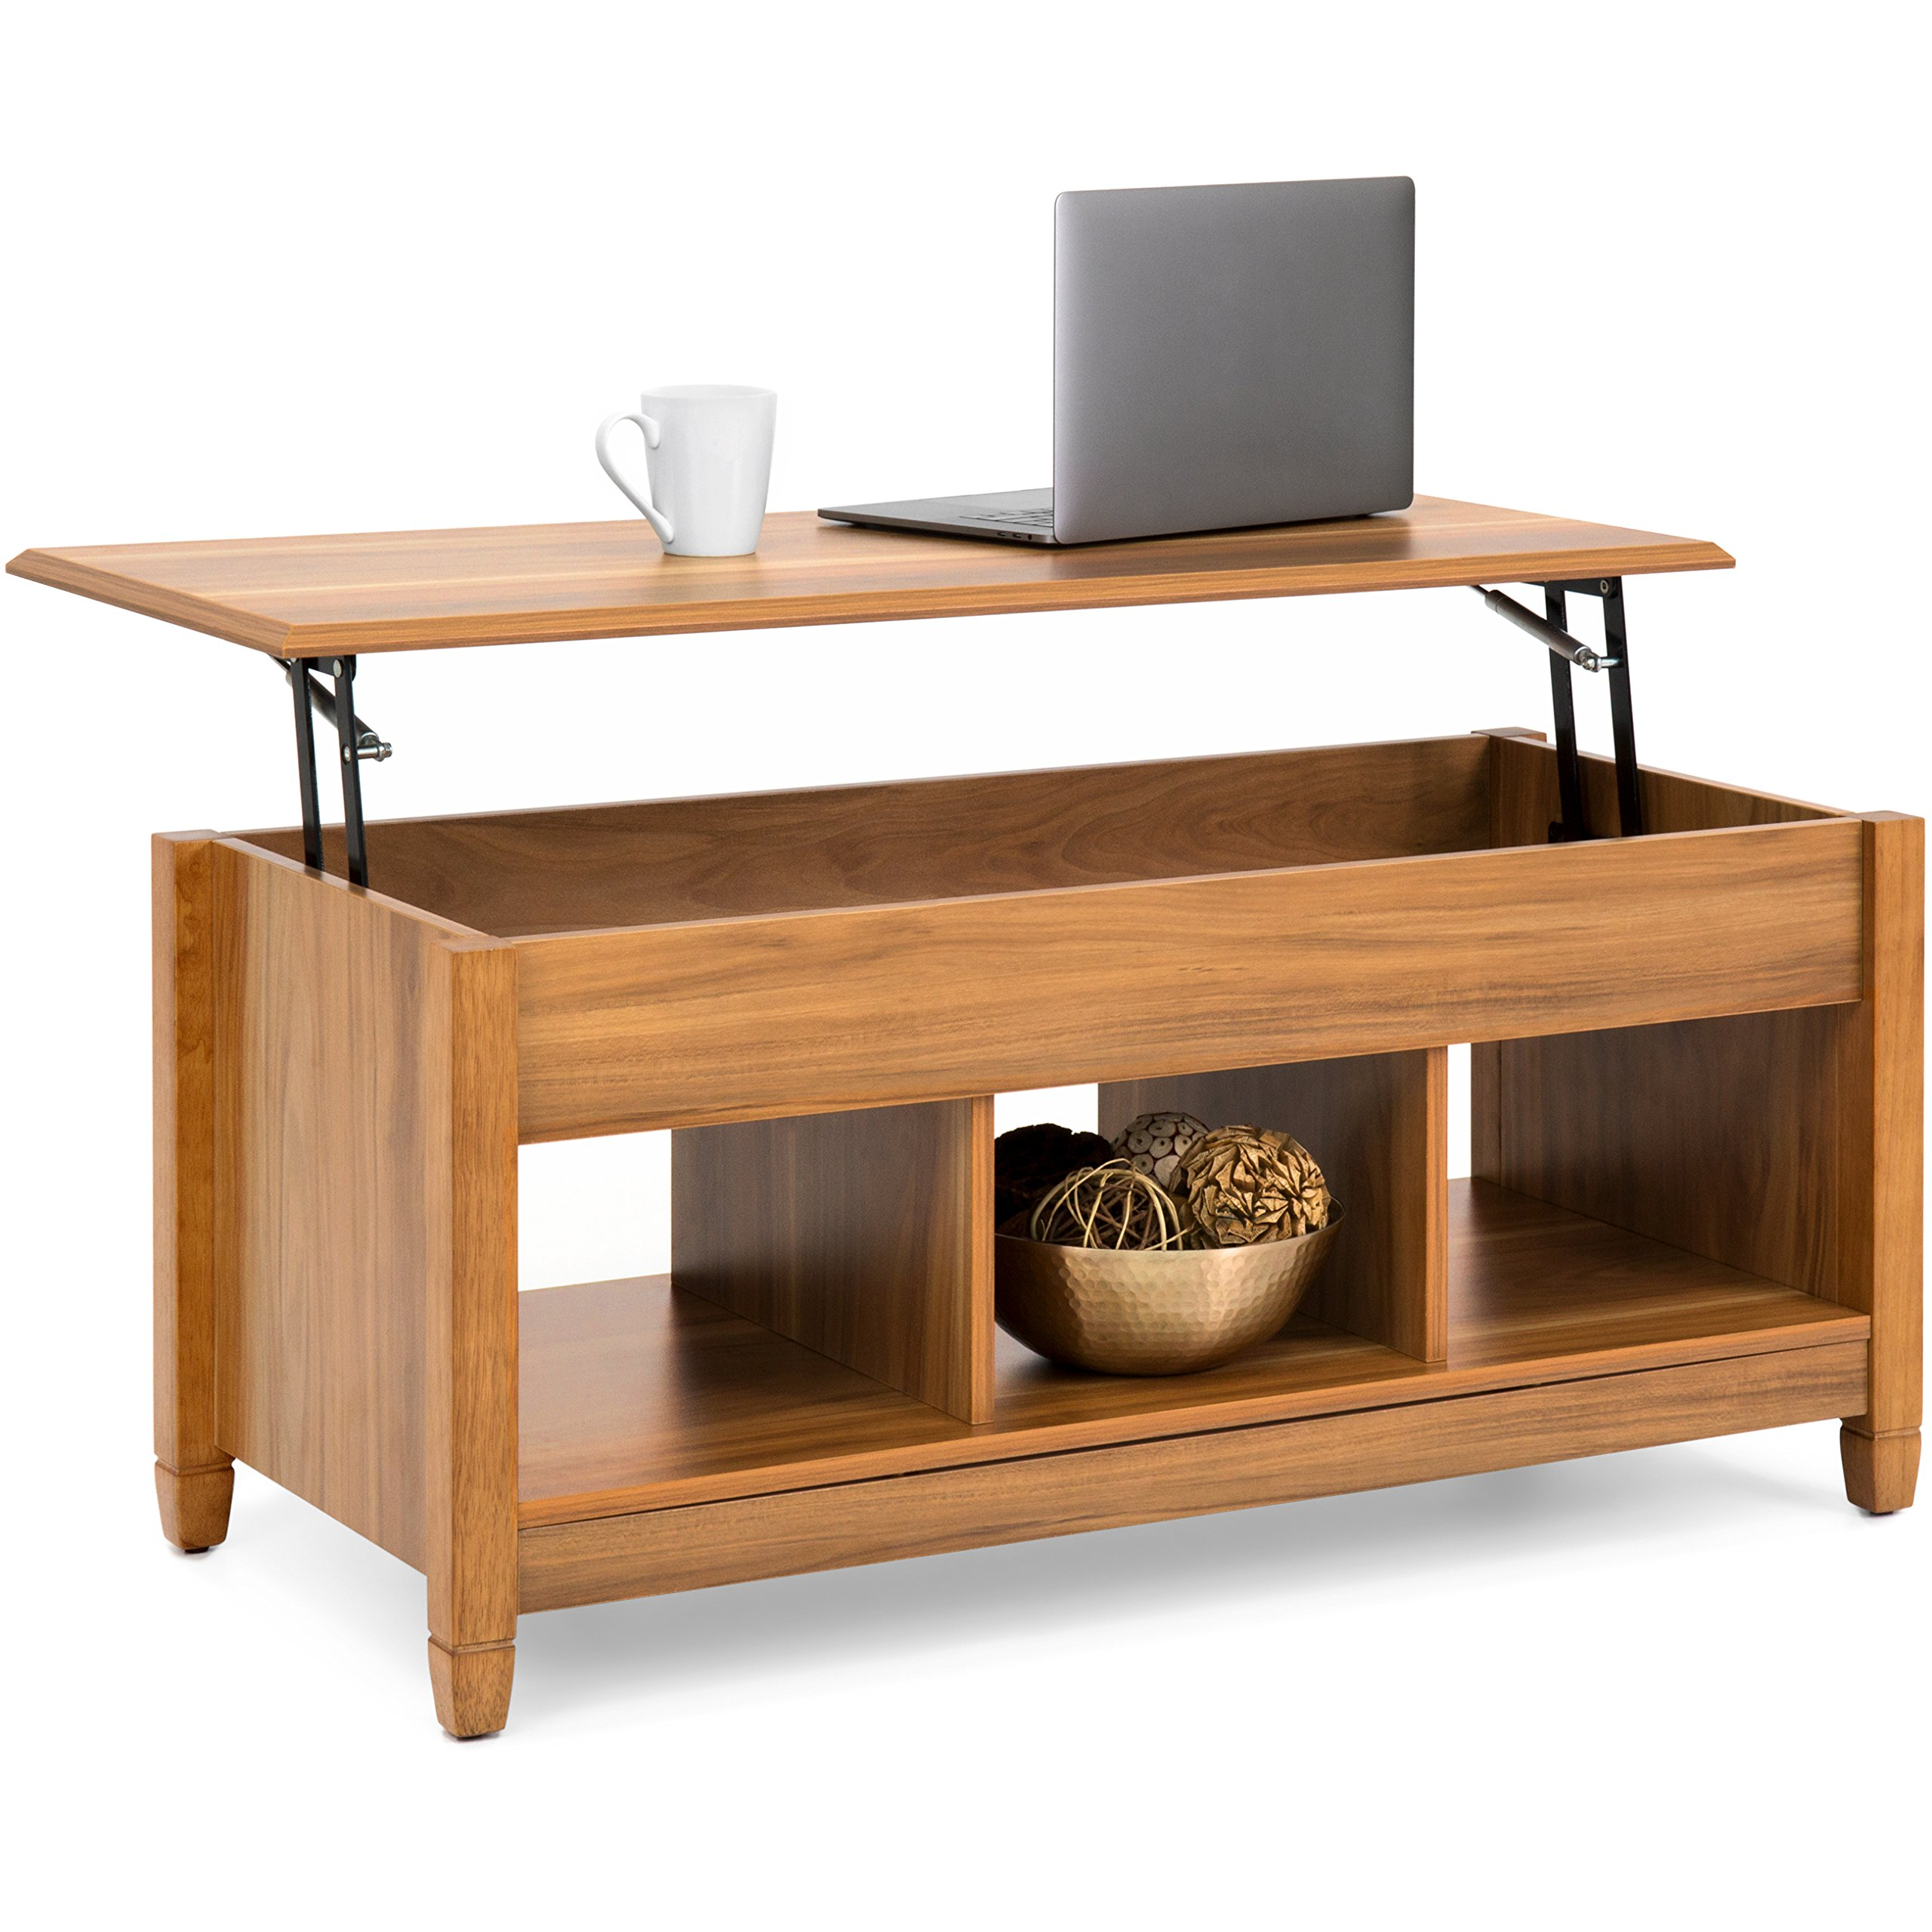 Best Choice Products Rectangular Lift Top Coffee Table w/ Hidden Compartment And Lift Tabletop (Golden Oak)